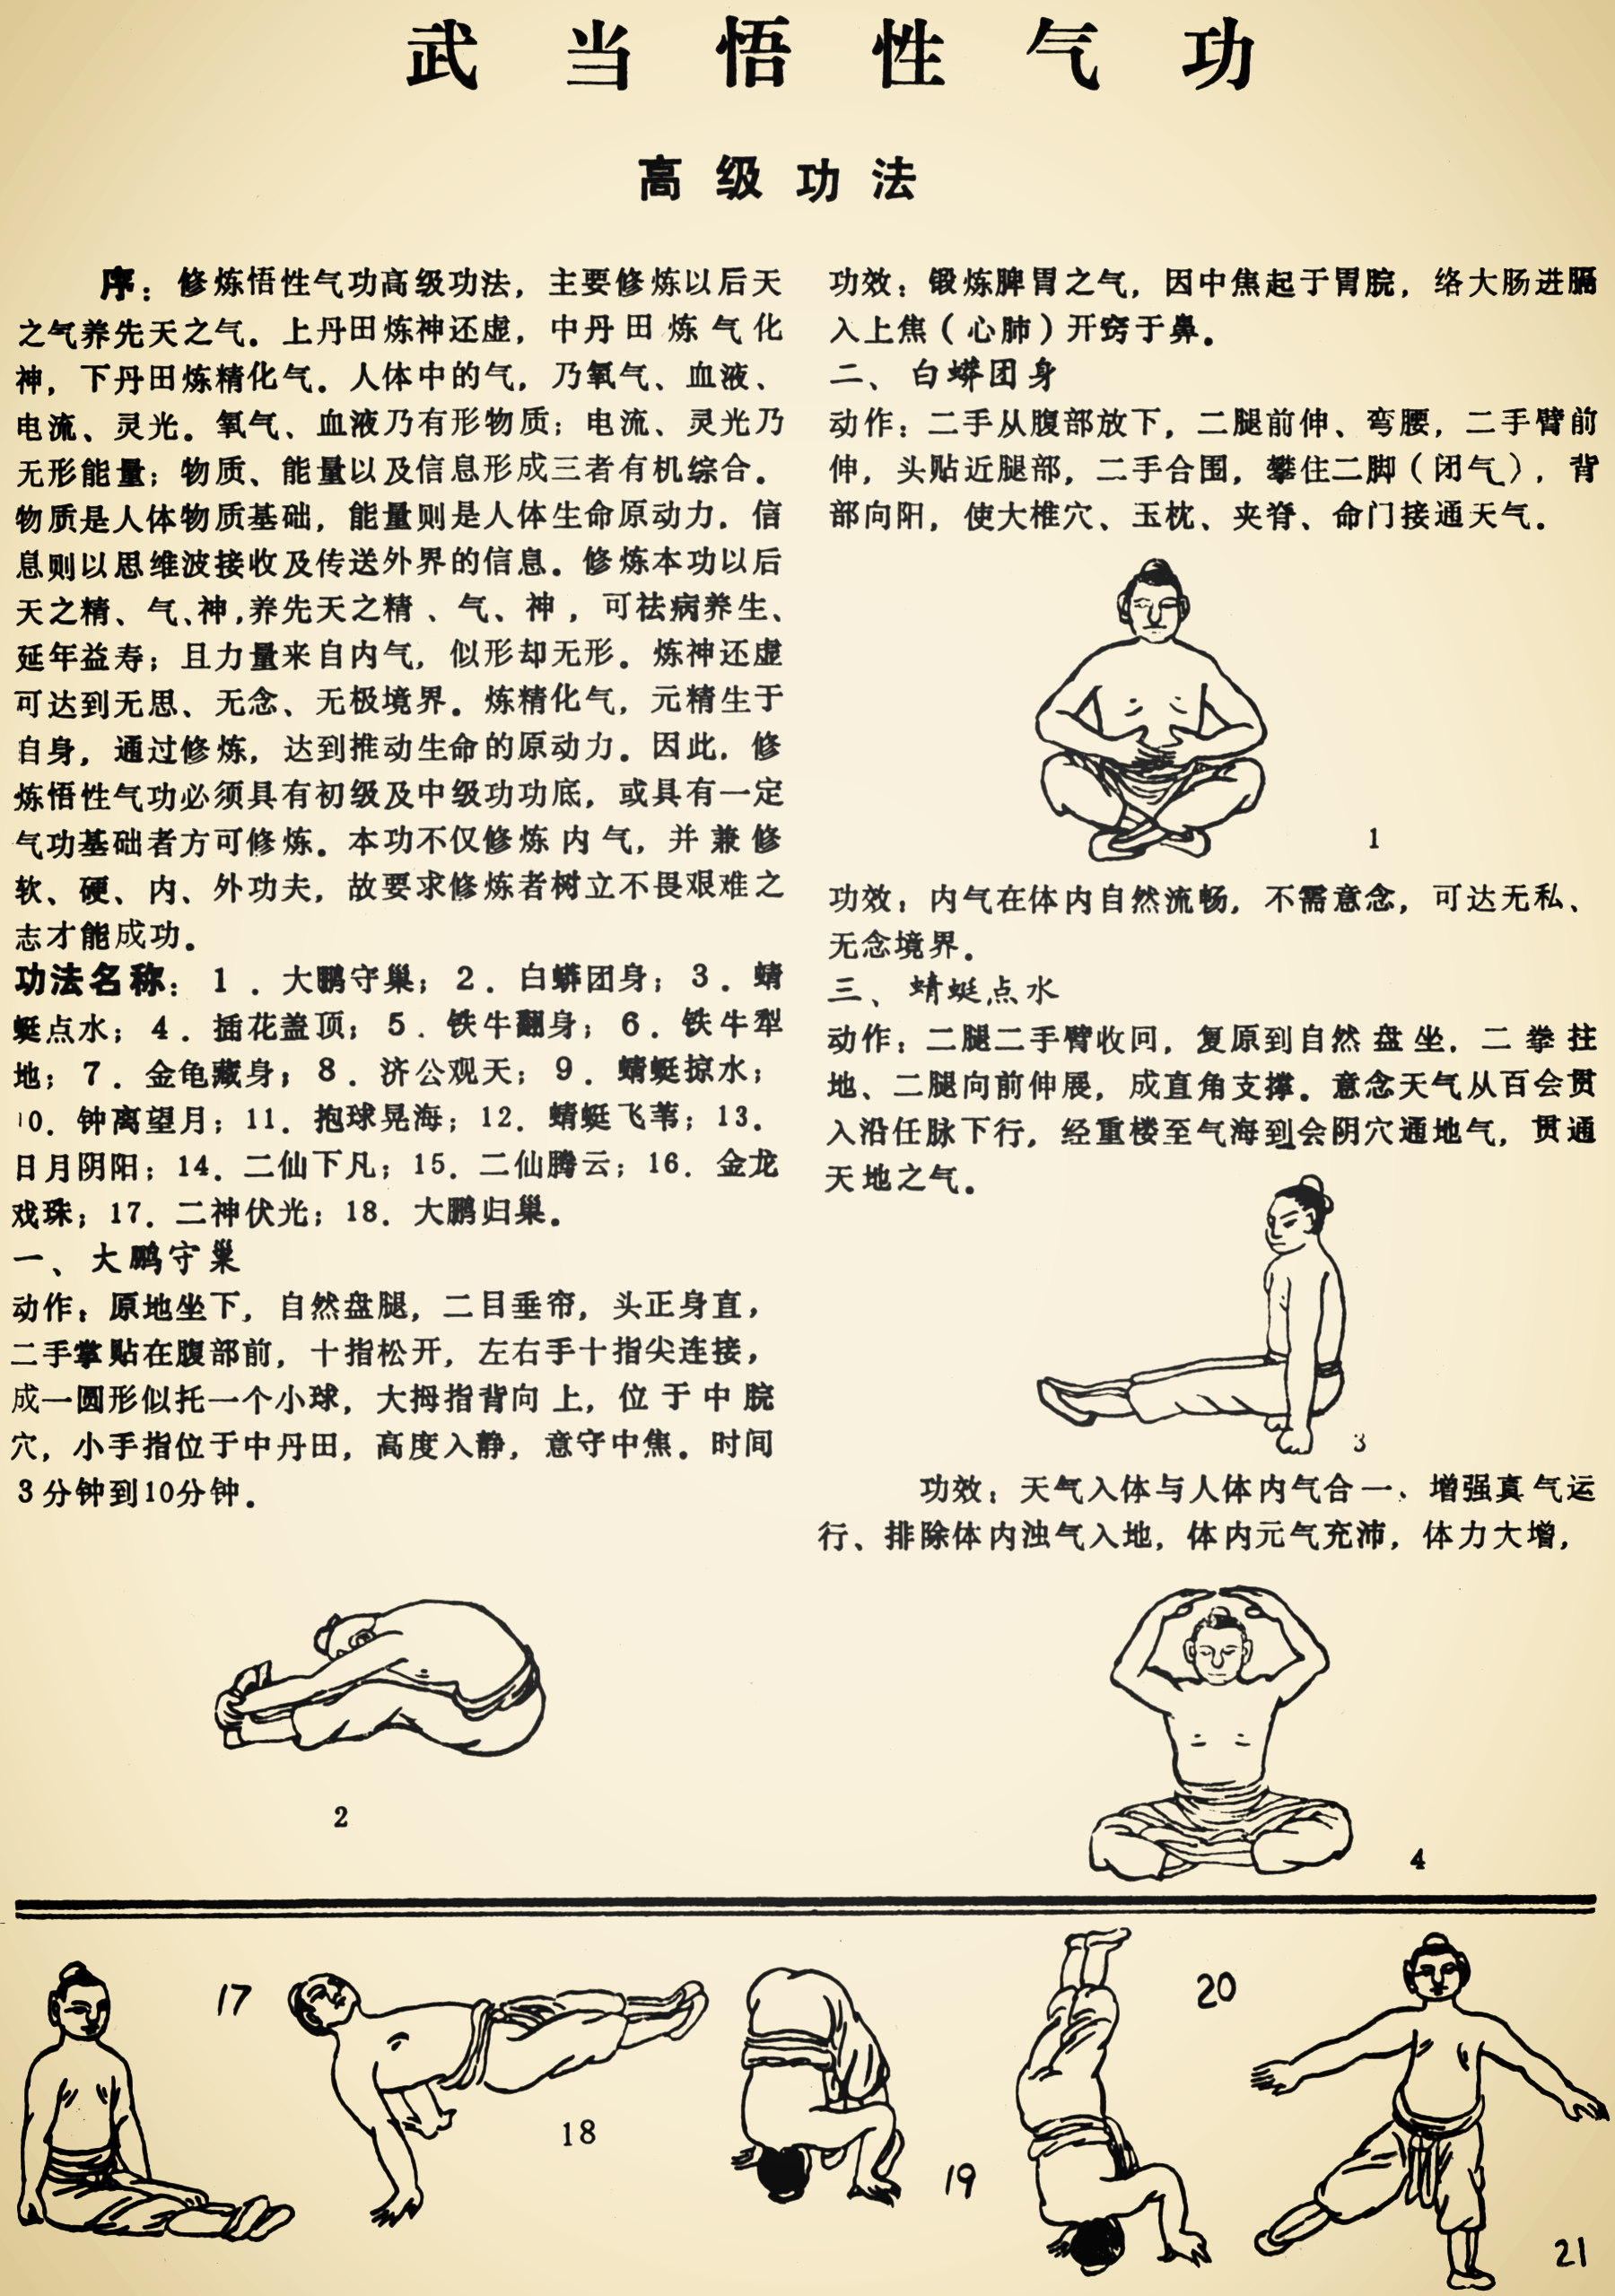 Instructions on the Wudang Wuxing Qigong by Lu guo Zhu